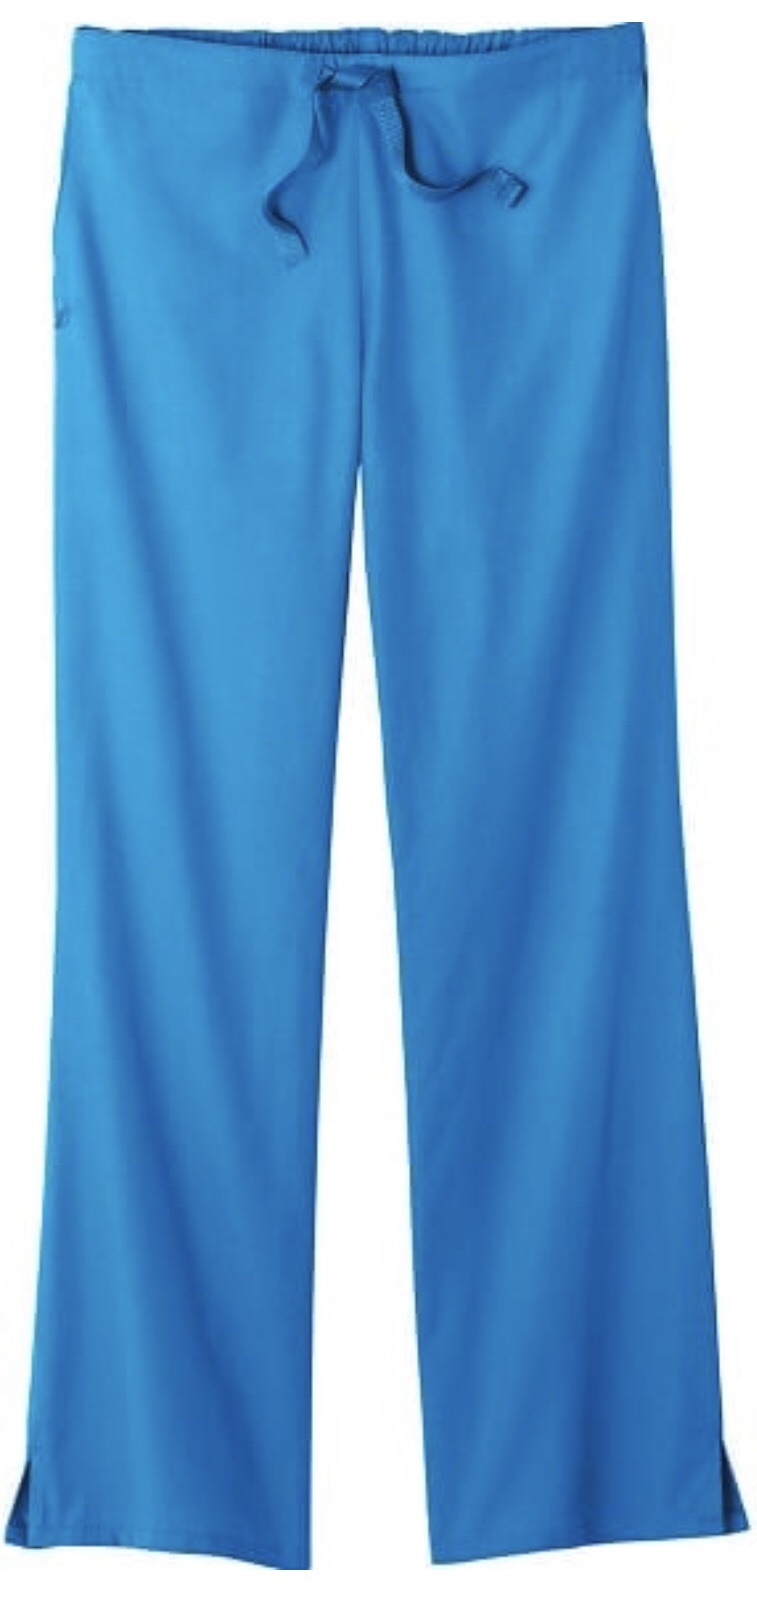 Women's Tall Fundamentals Pants(Various Styles & Sizes)